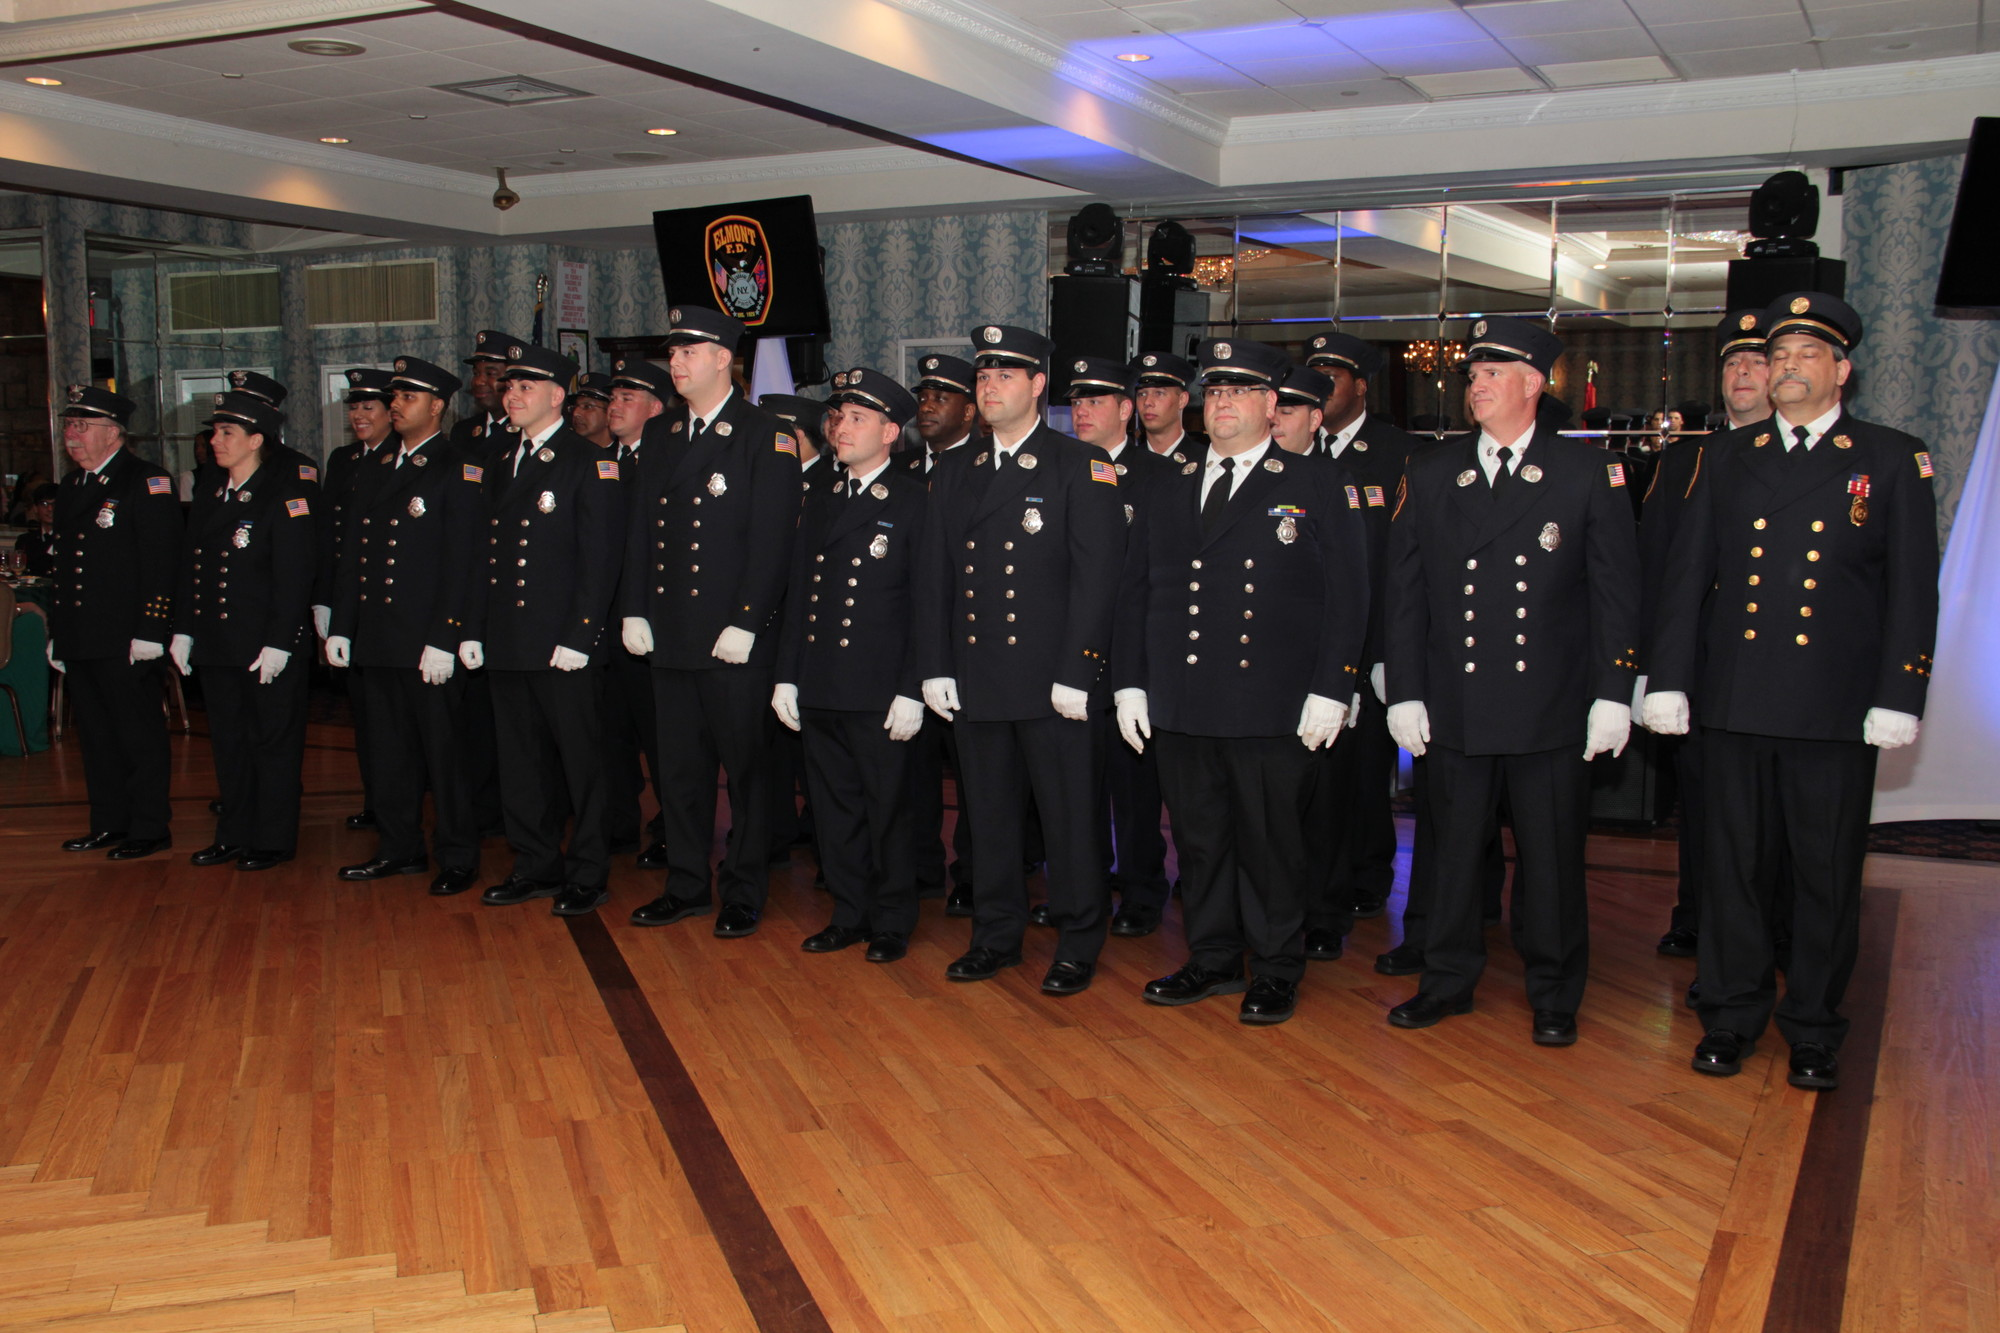 Members of the Elmont Fire Department looked sharp at the 86th department installation.